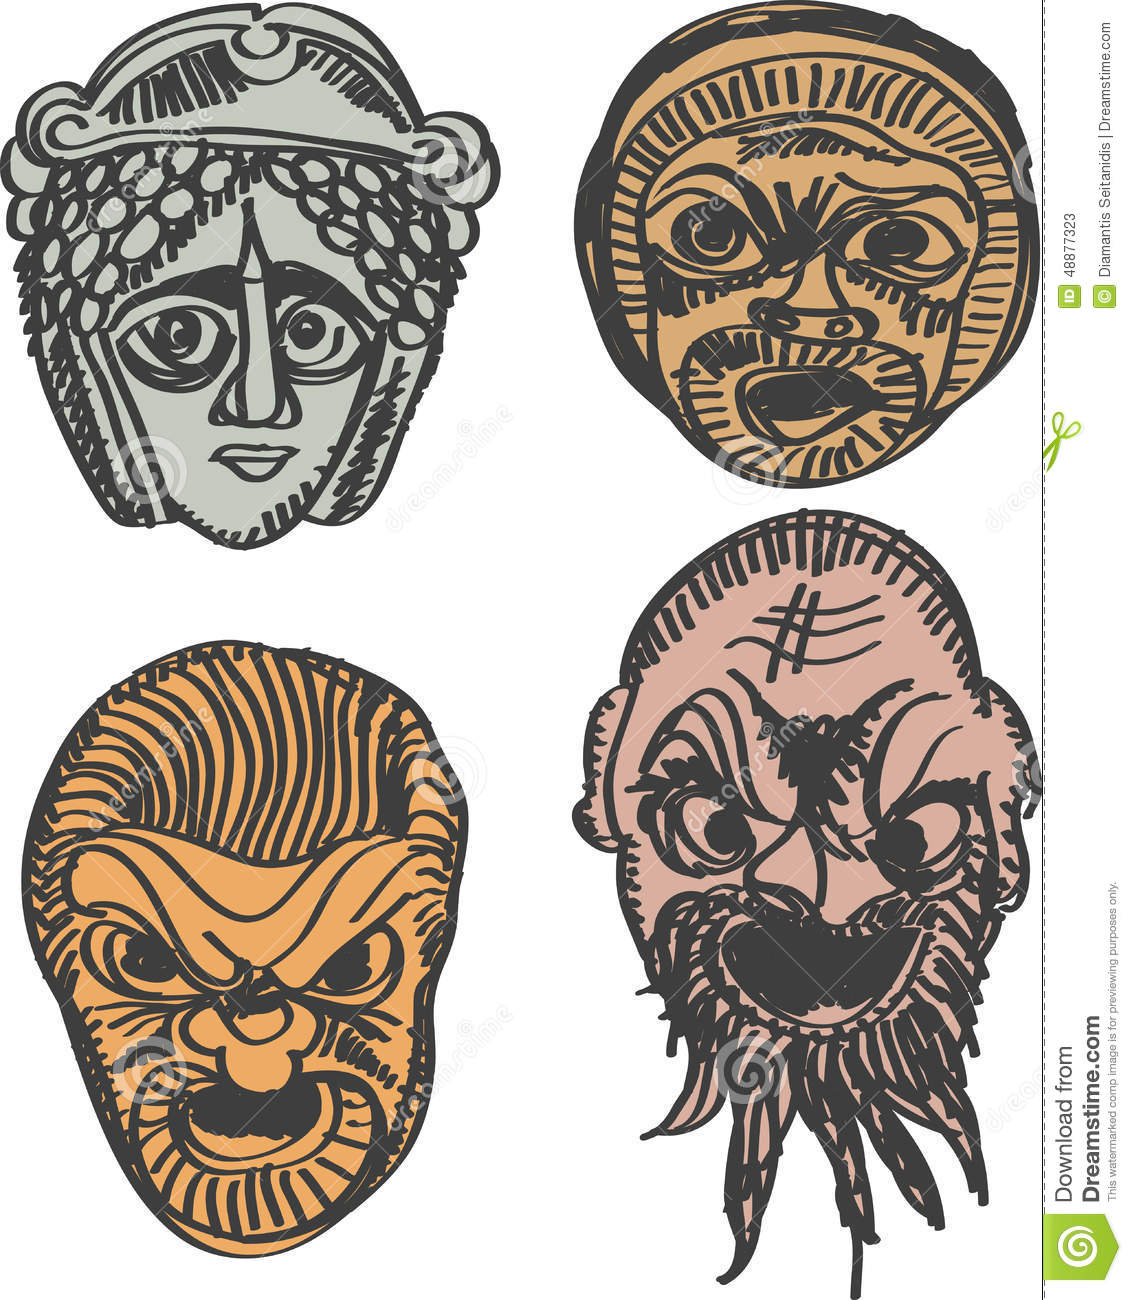 Classical Ancient Greek Drama Masks Stock Vector - Image: 48877323